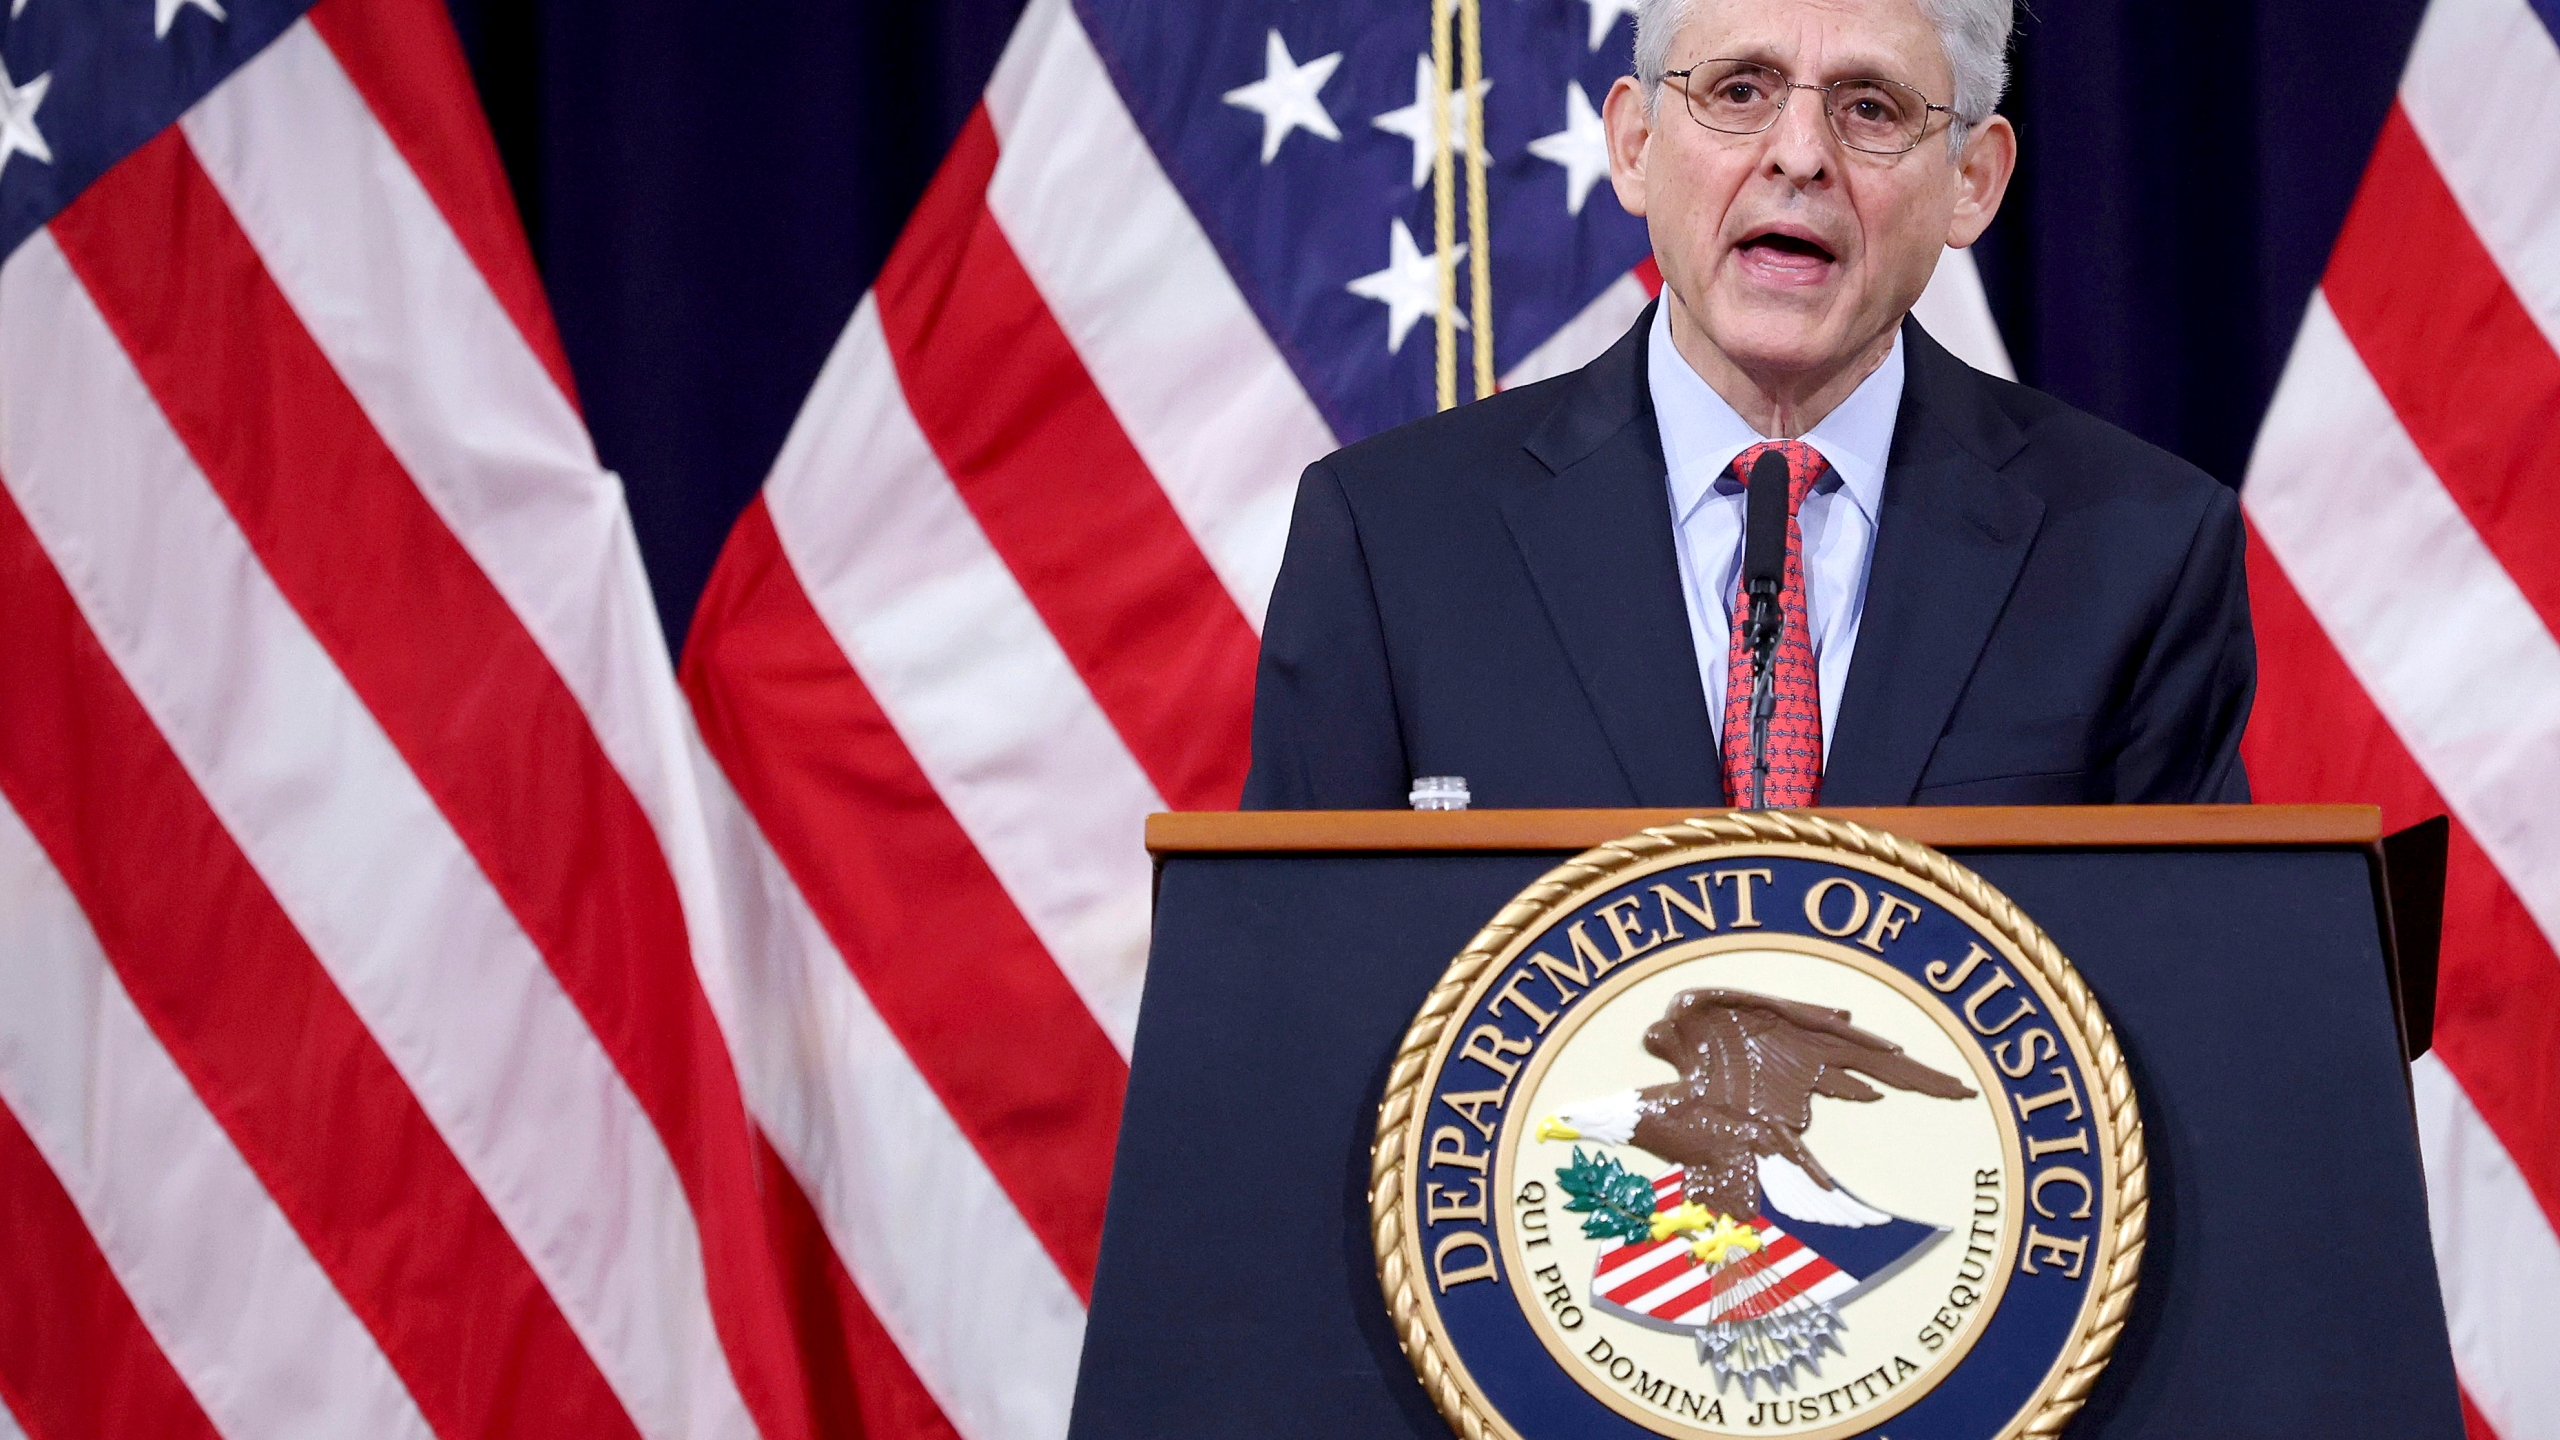 FILE - In this June 15, 2021, file photo Attorney General Merrick Garland speaks at the Justice Department in Washington. The Justice Department is suing Georgia over the state's voting laws, a person familiar with the matter said Friday, June 25. (Win McNamee/Pool via AP)